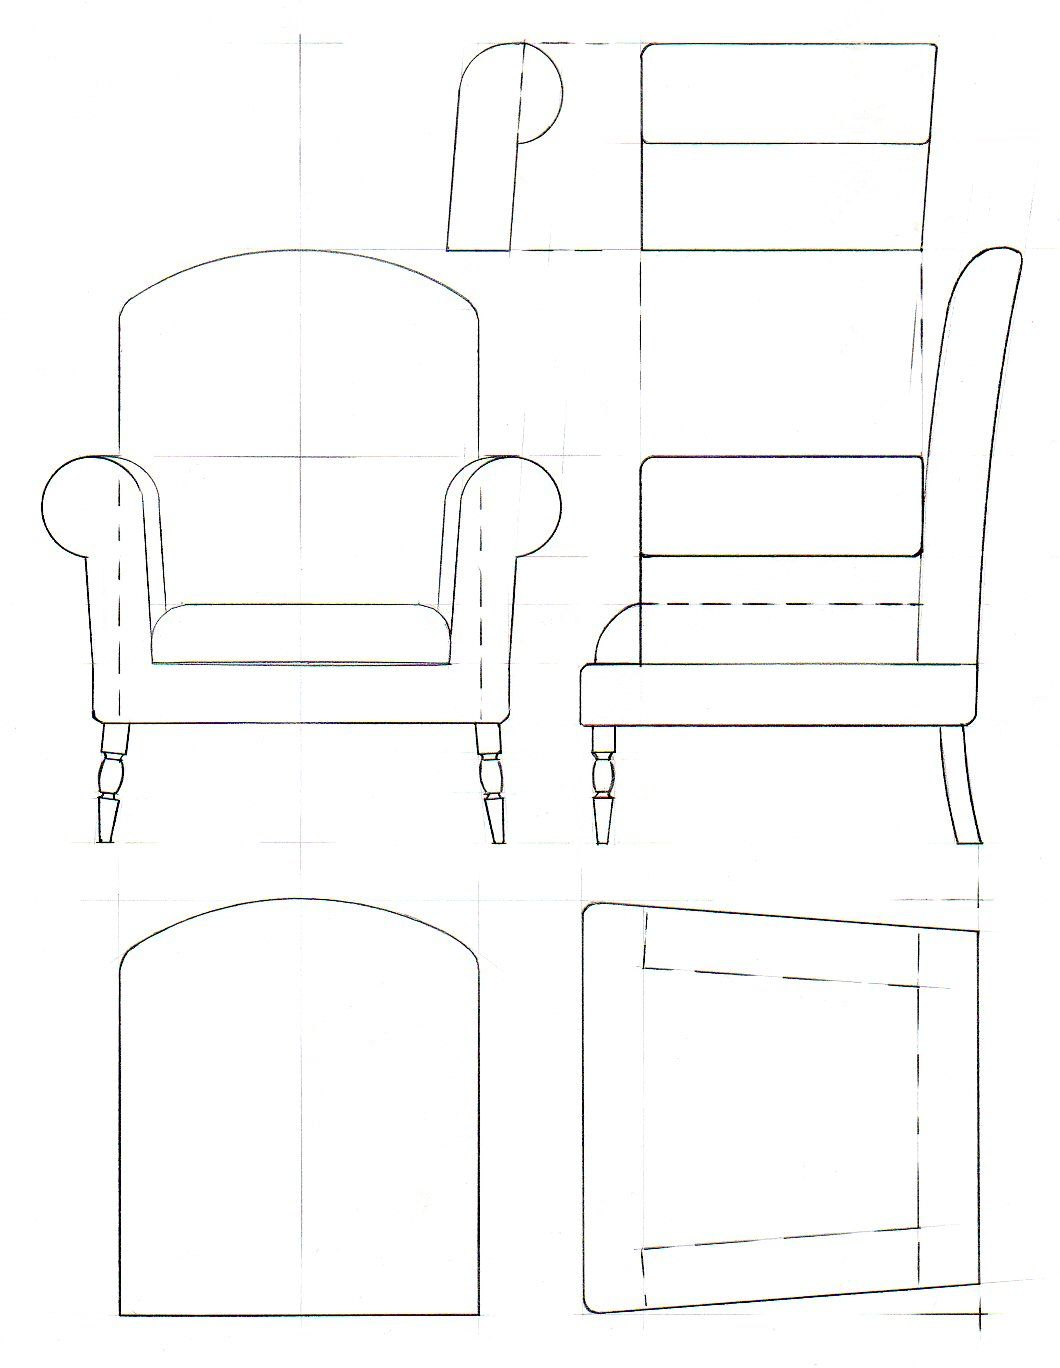 Line Art Dollhouse : Template drawings for furniture model making davidneat